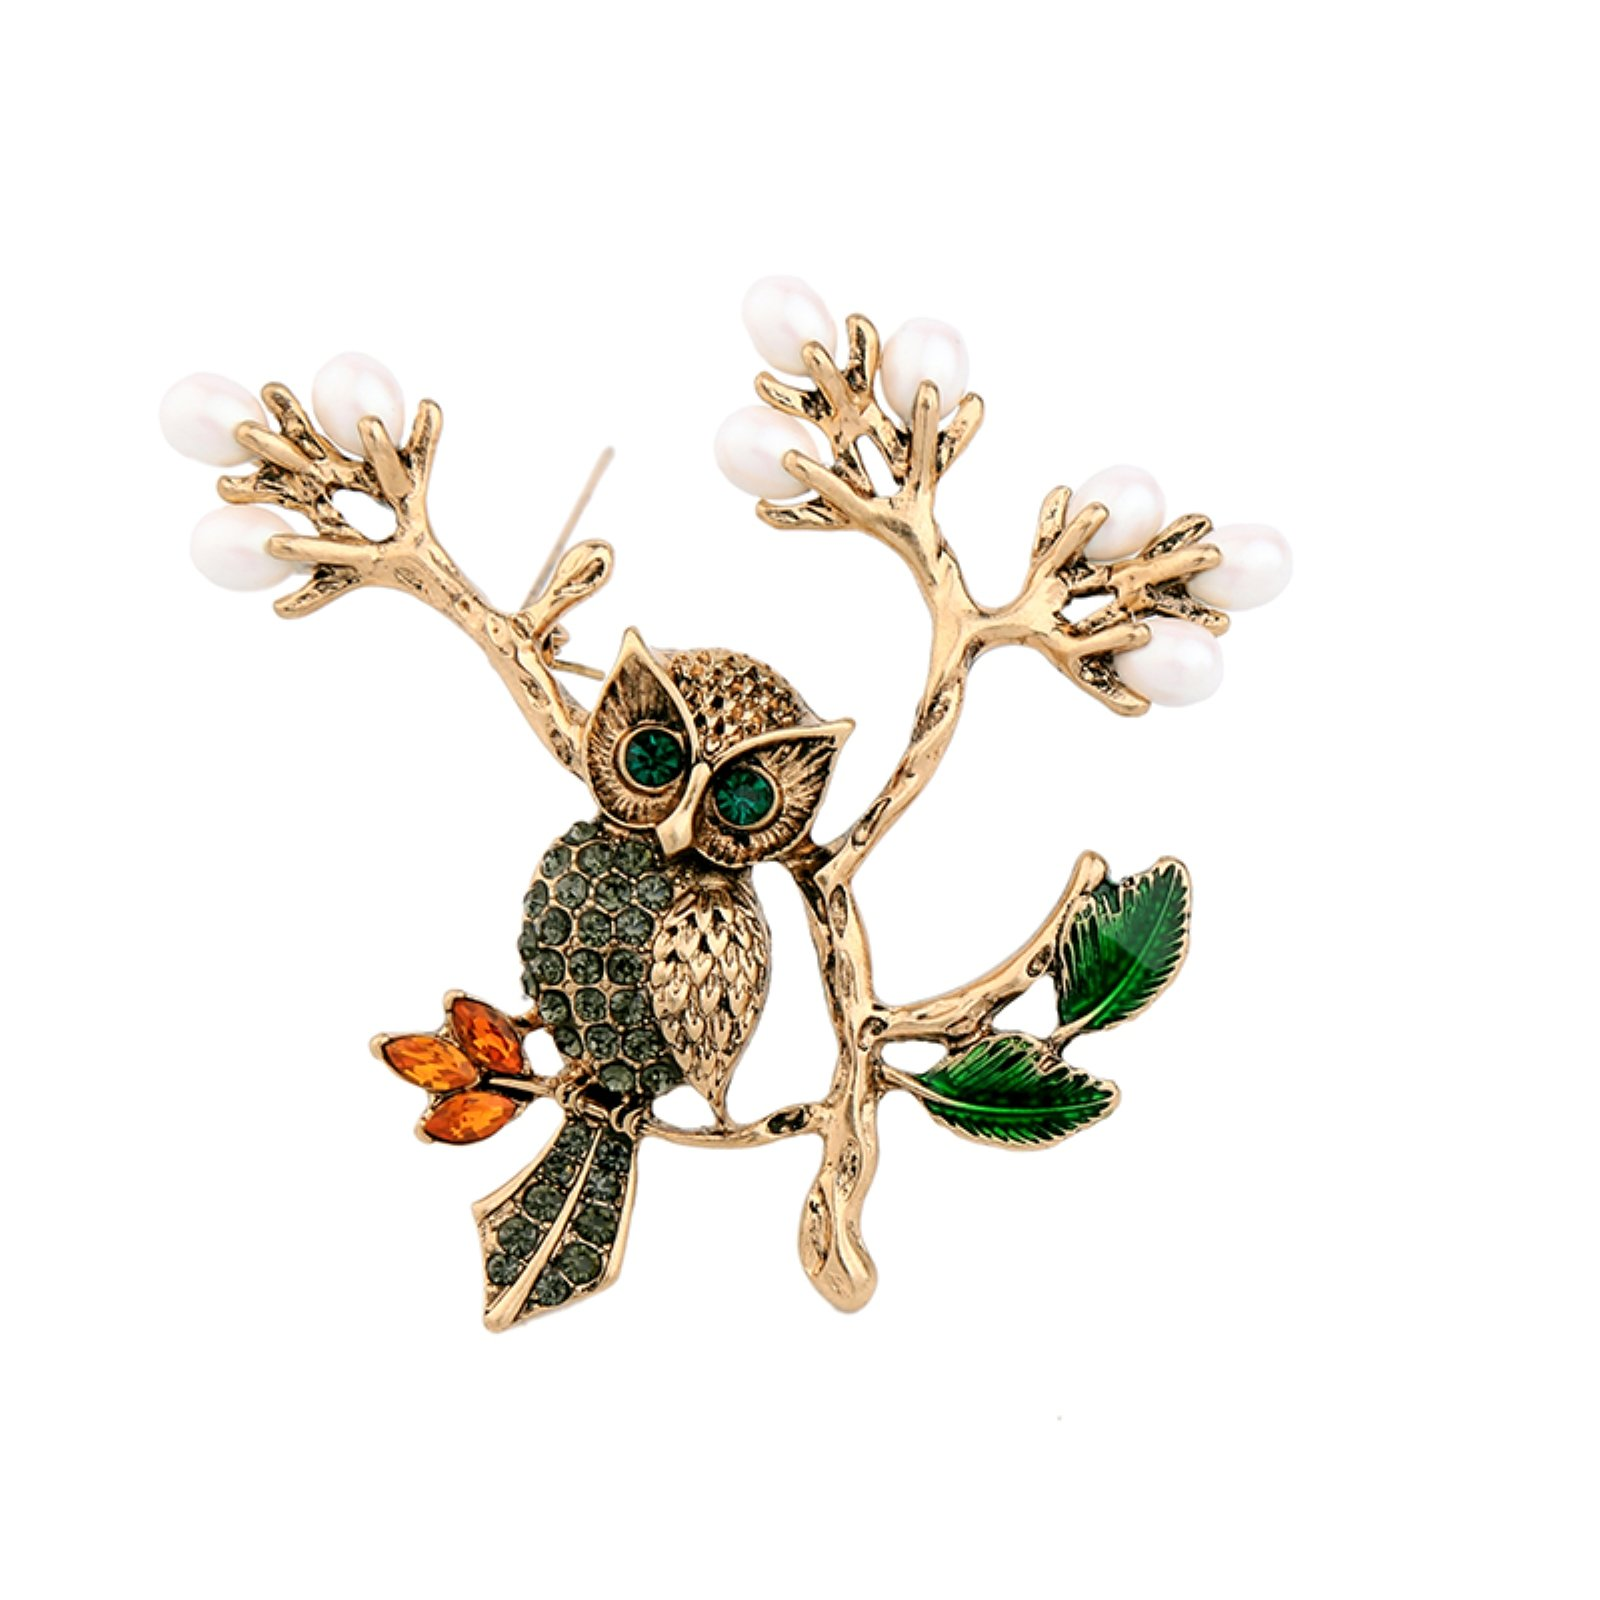 ptk12 Animal Design Alloy Branch Green Crystal Owl Brooches for Women Vintage Big Brooch Pins